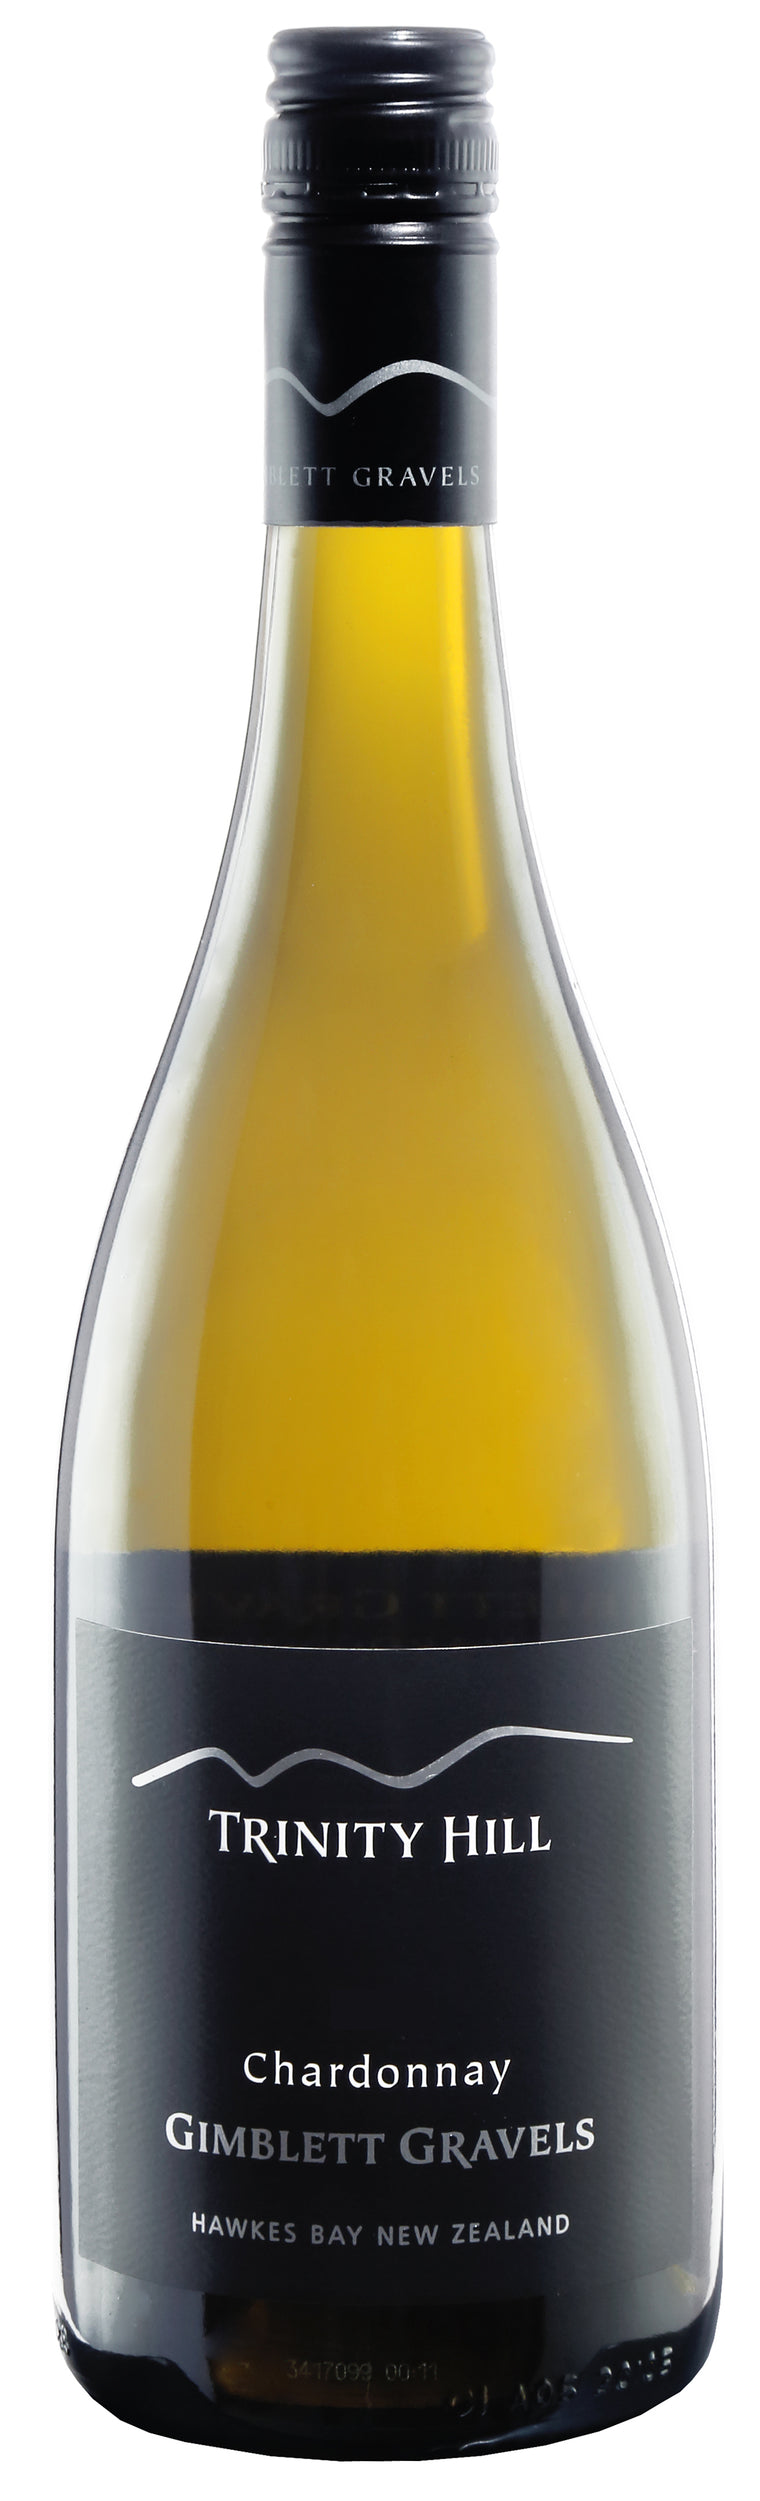 Gimblett Gravels Chardonnay 2016, Trinity Hill, Hawkes Bay, New Zealand 13%